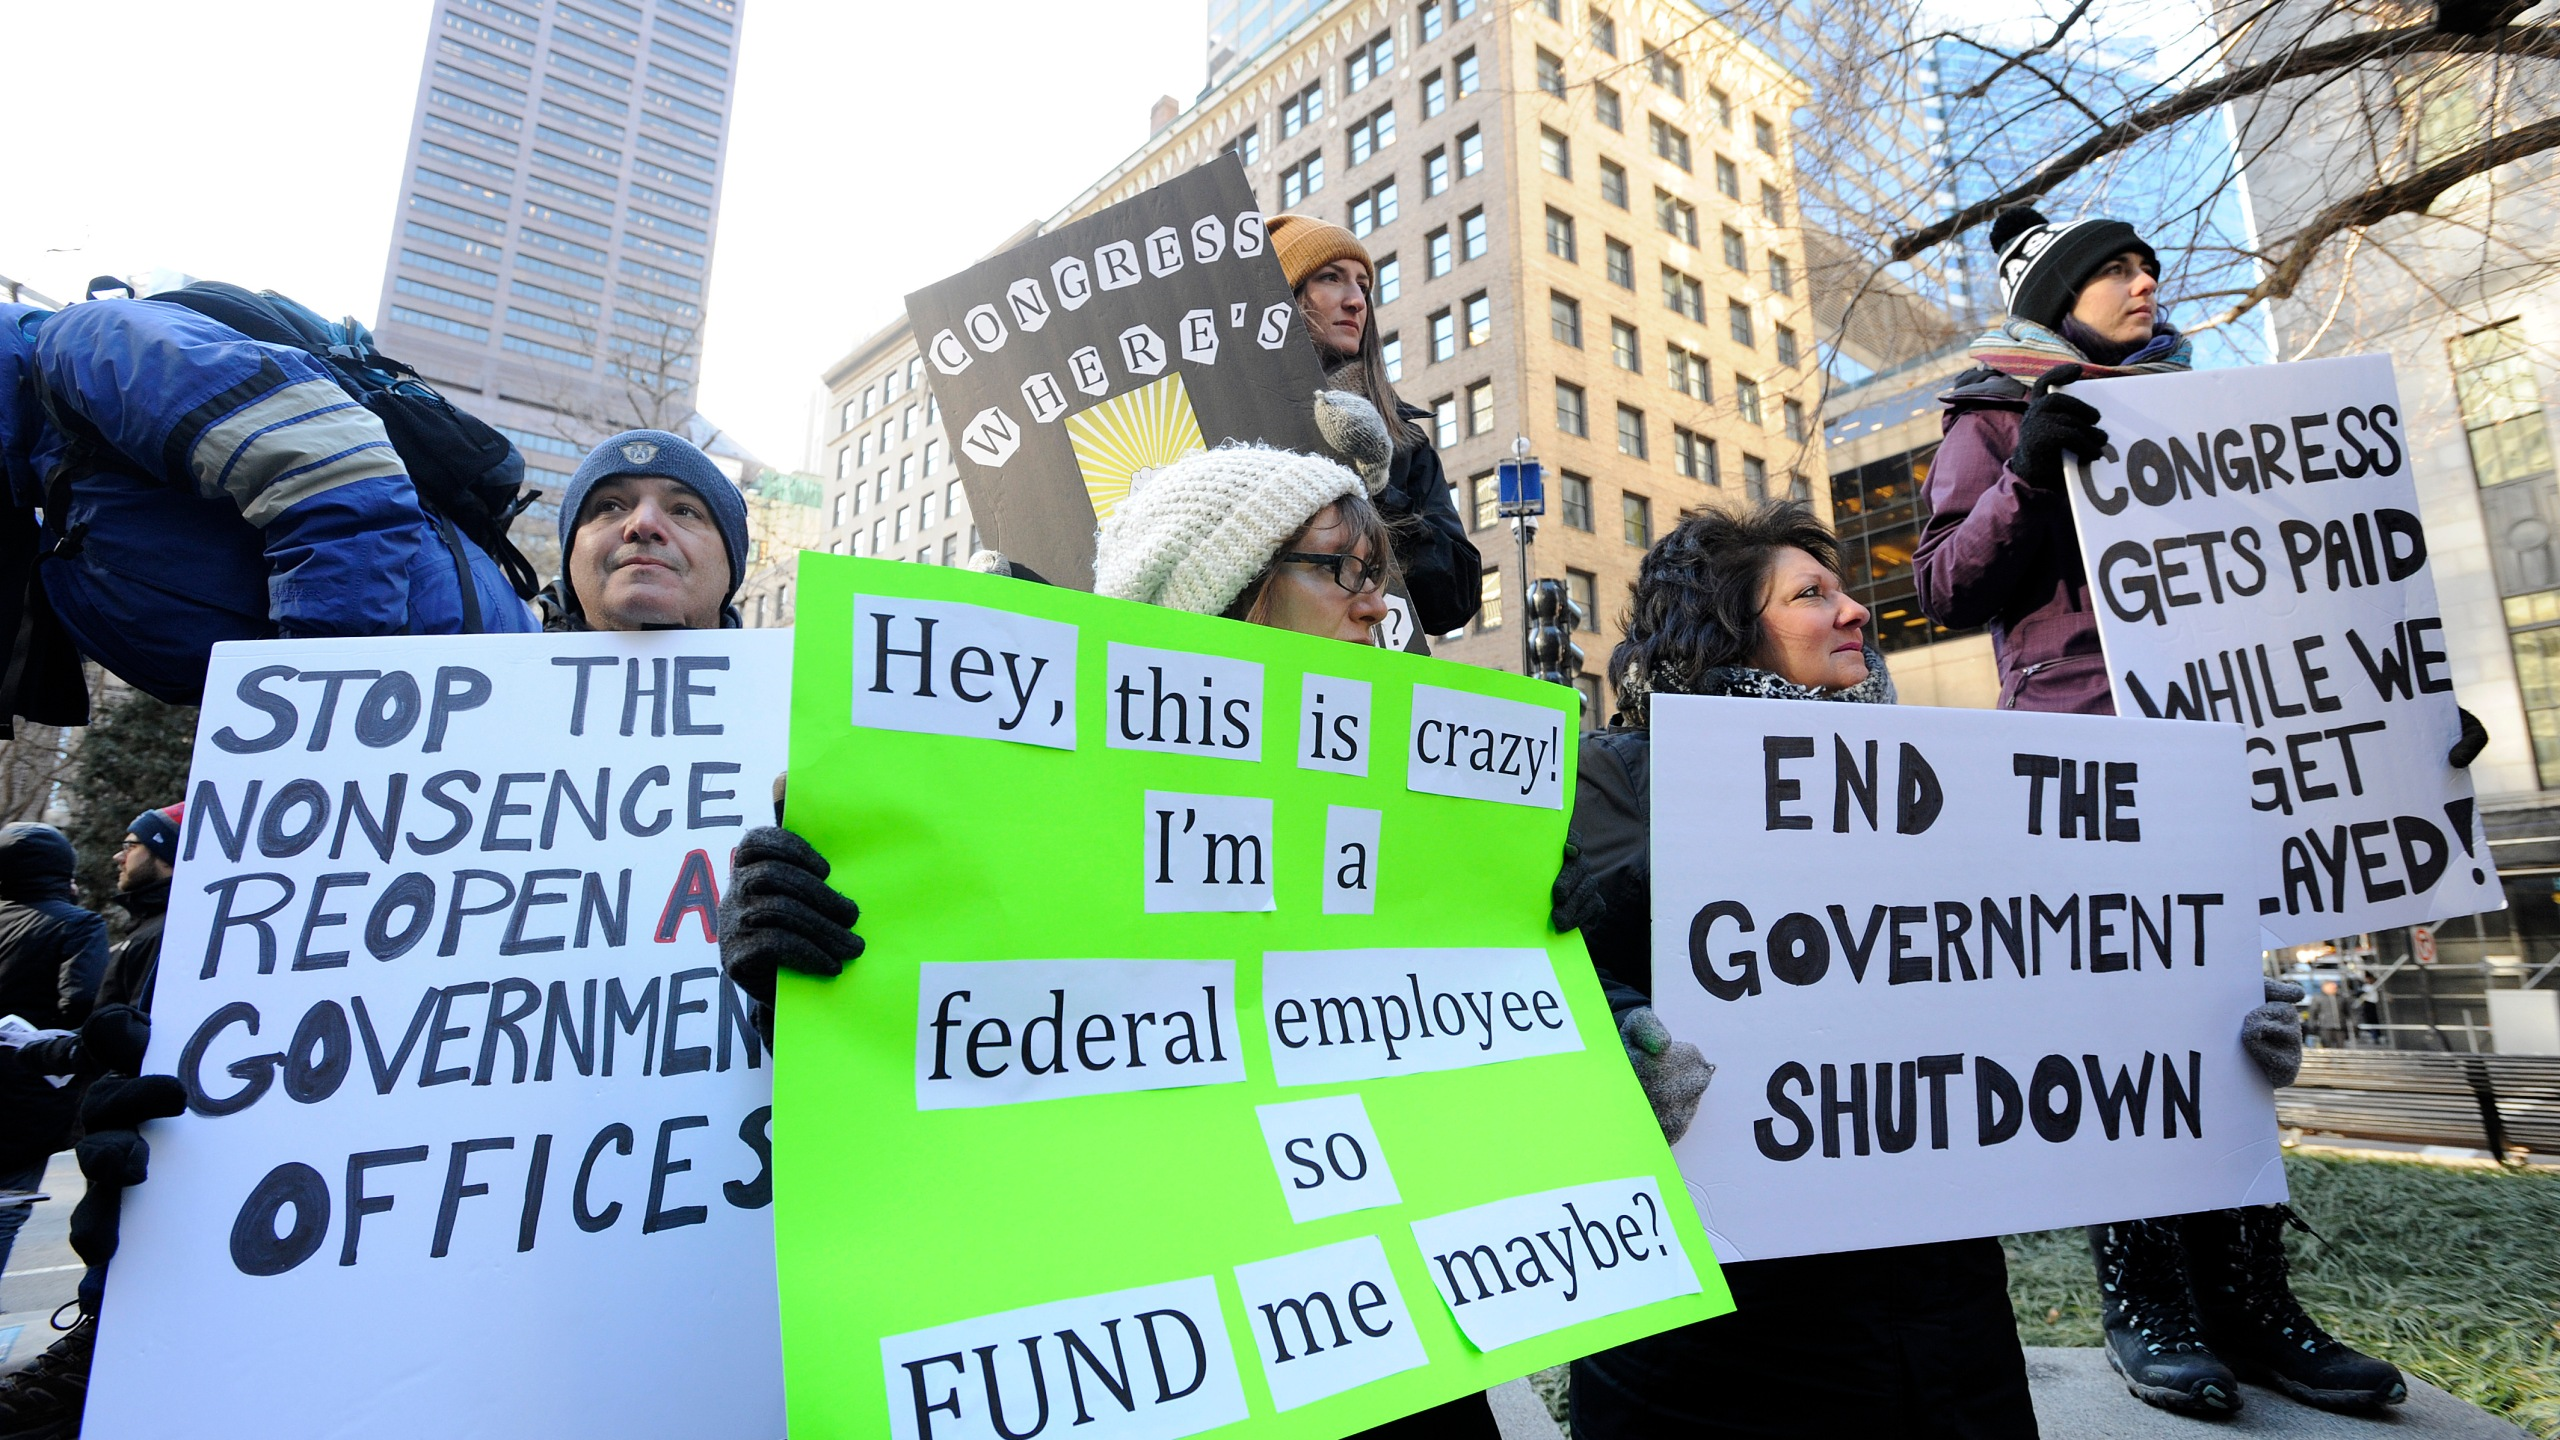 Demonstrator hold signs during a protest rally by government workers and concerned citizens against the government shutdown on Friday, Jan. 11, 2019. (Credit: Joseph Prezioso/AFP/Getty Images)